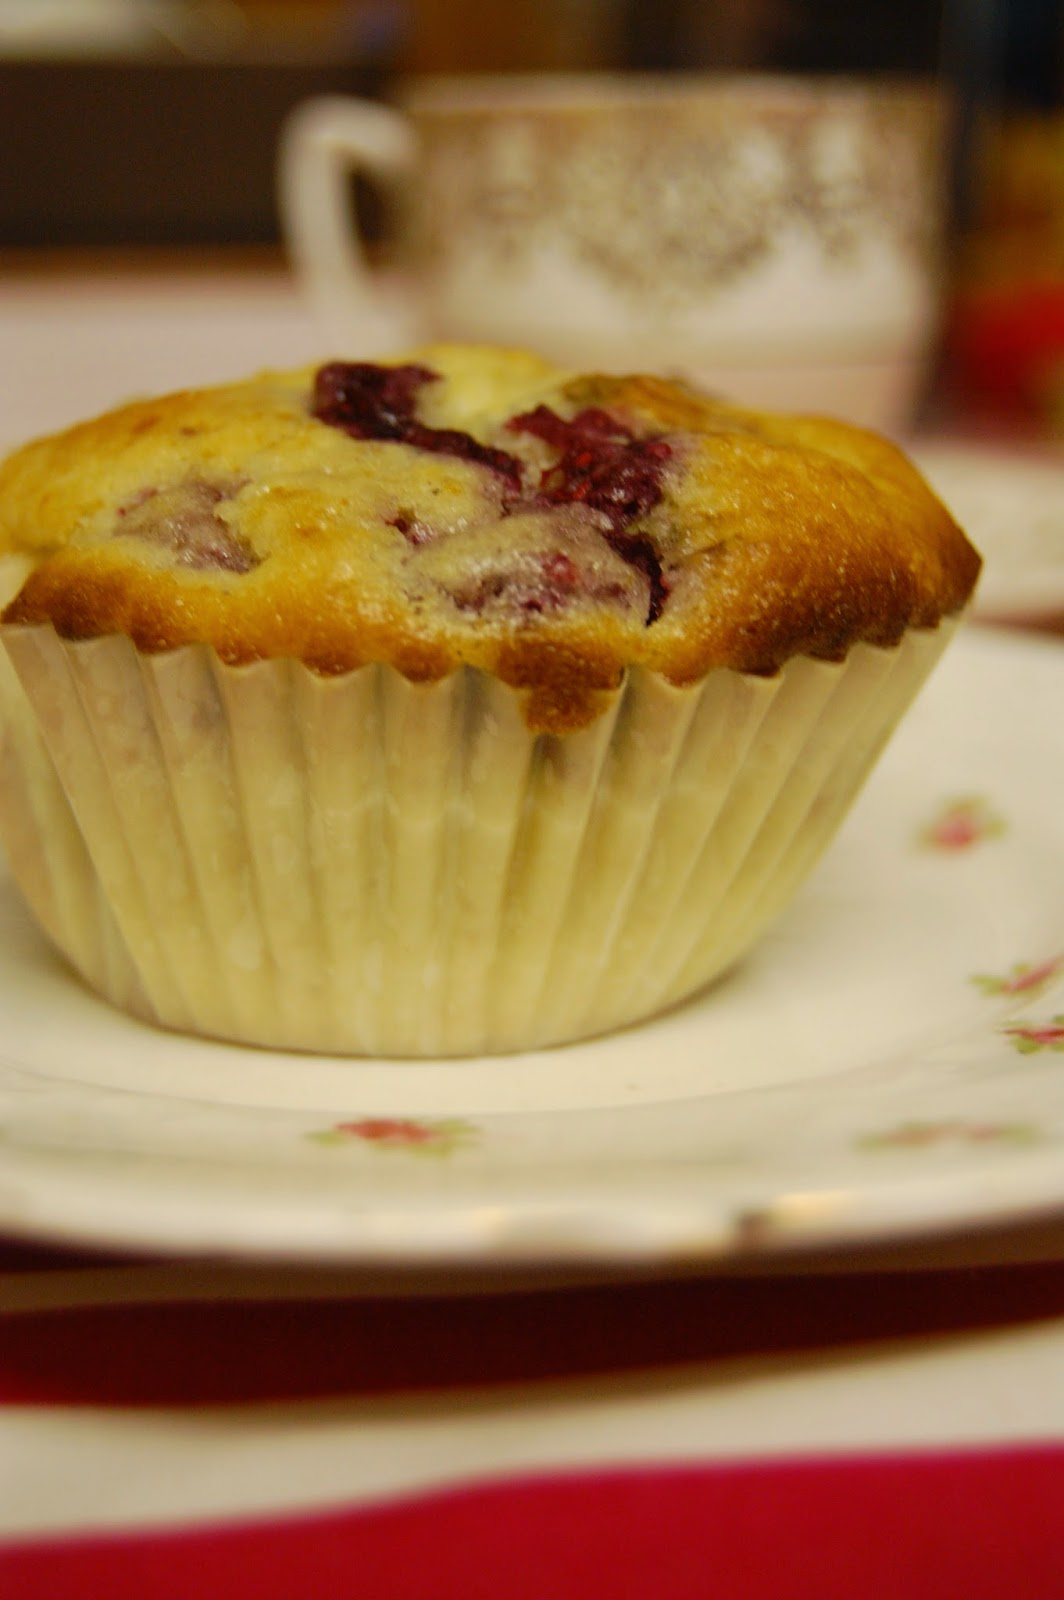 Simple cherry muffins #lifeonpigrow